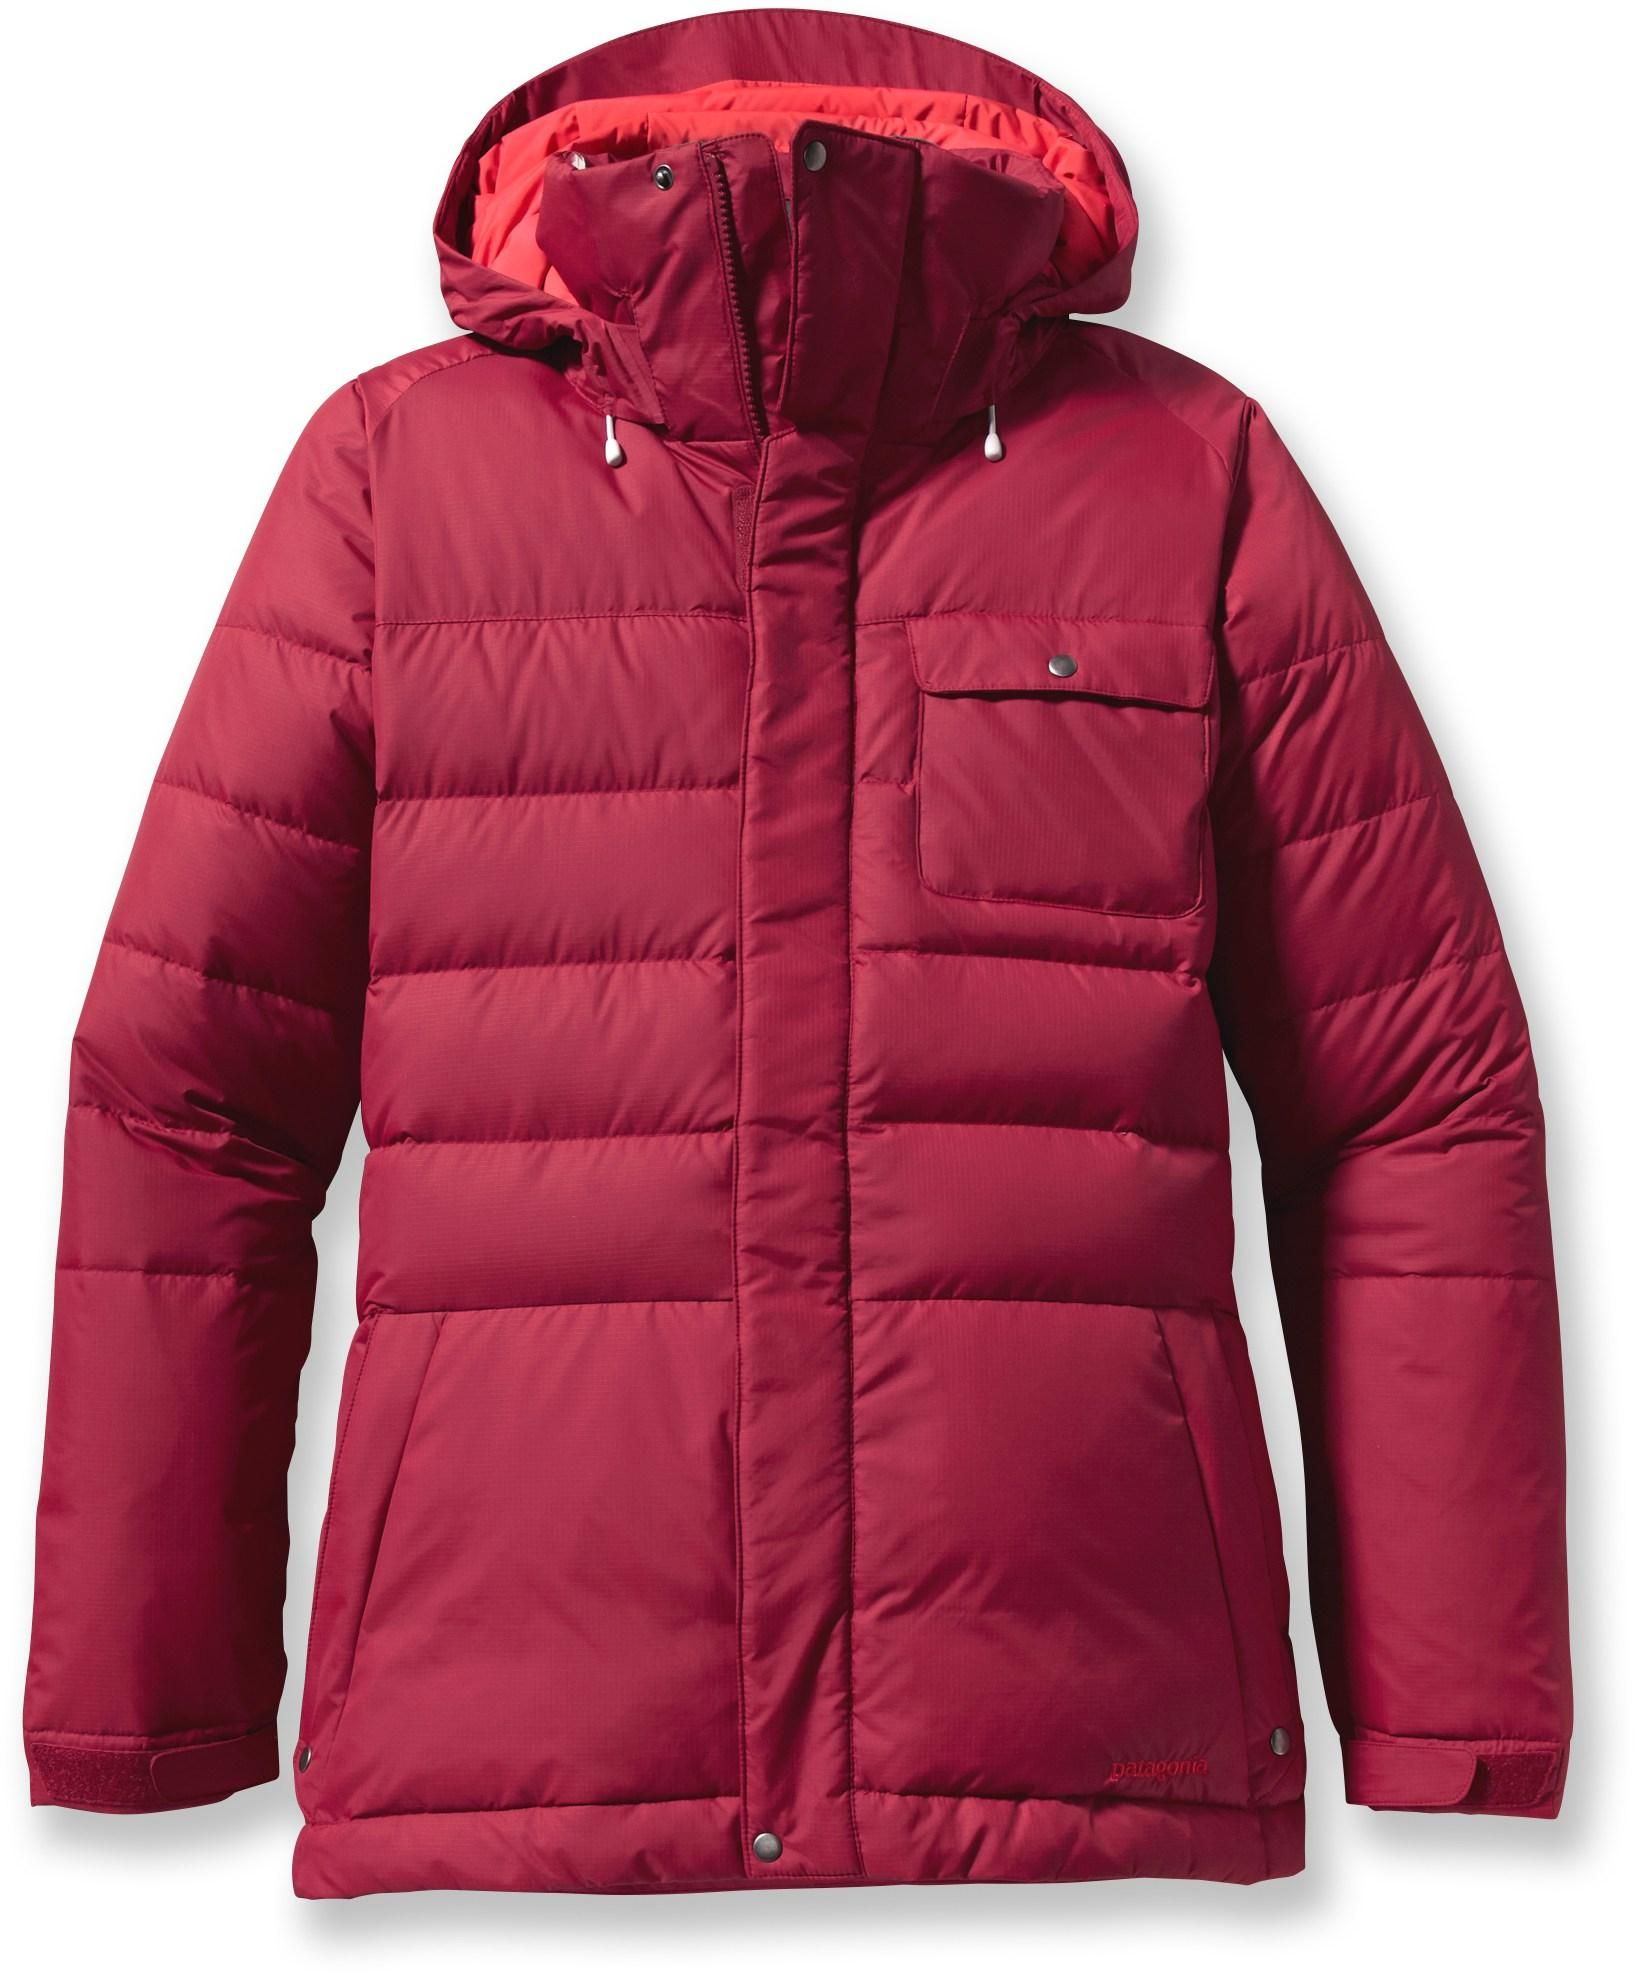 58379dbaf At REI Outlet: Women's Patagonia Rubicon Down Jacket — 600-fill ...